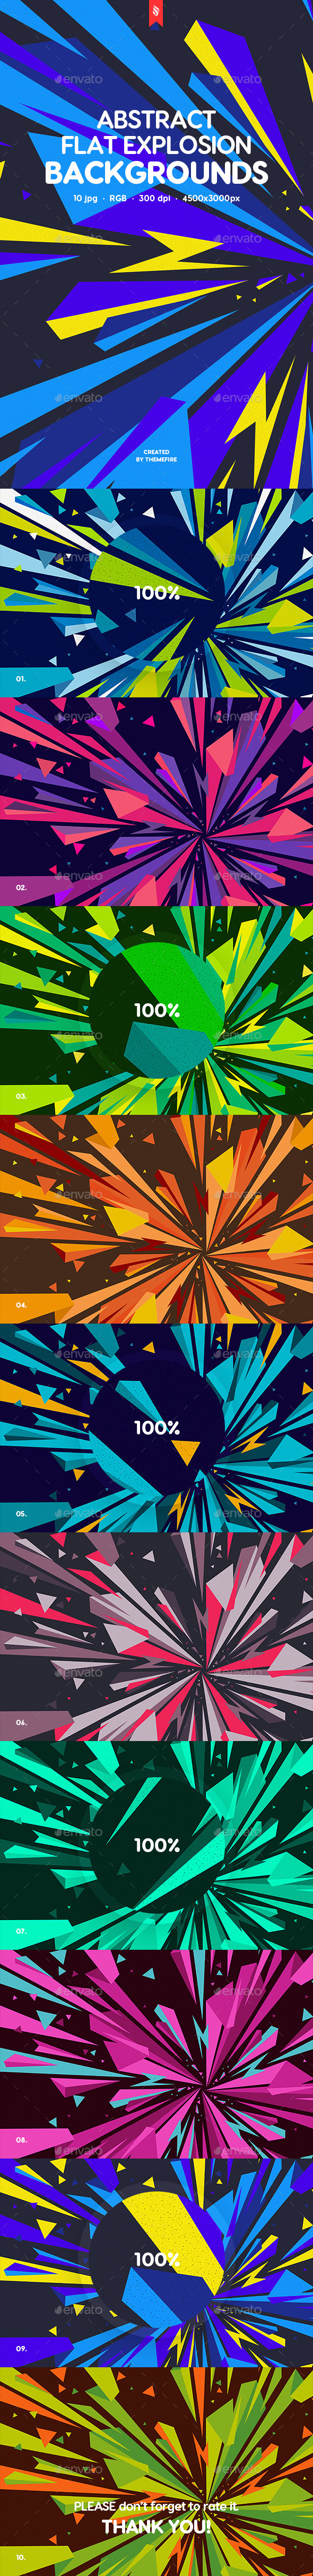 Abstract Flat Explosion Backgrounds - Abstract Backgrounds